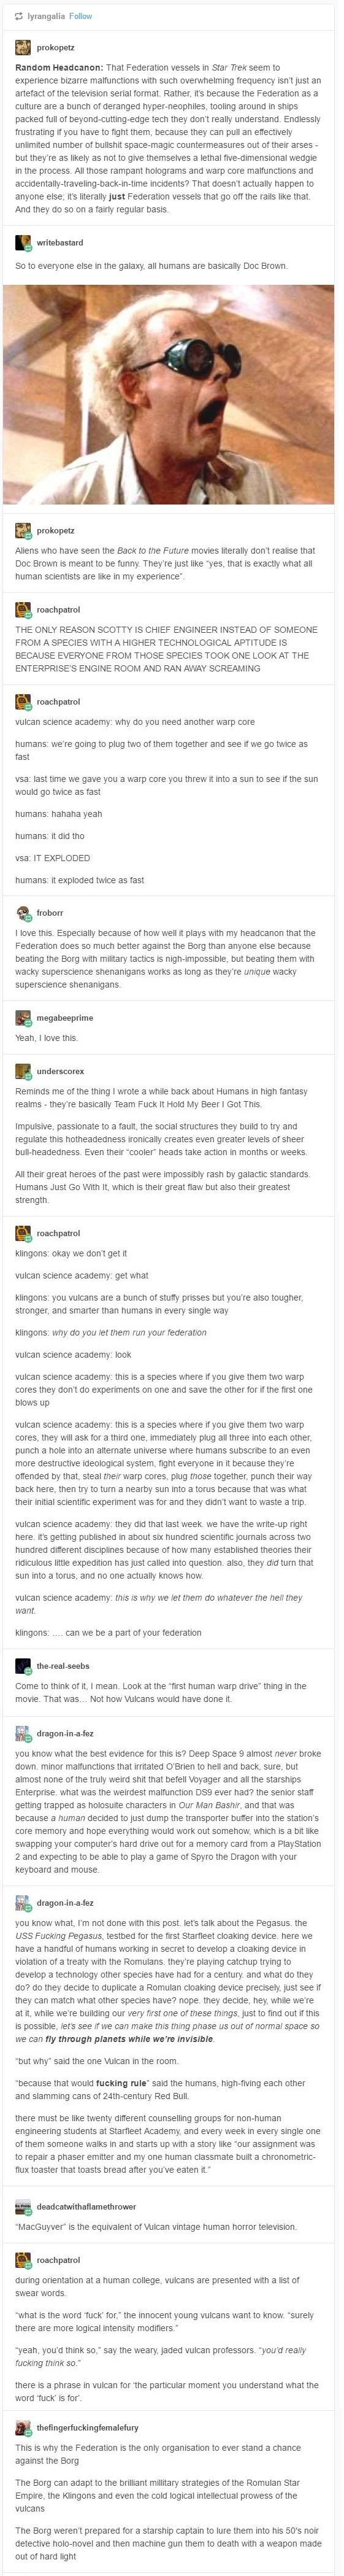 Basically, humans let their nerdiness overwhelm them and consume all their time as they create badass stuff. This is why I love startrek, because federation culture thinks science and innovation is awesome and not ironic. They value super dedicated hard work and nerdy obsession as the qualification of getting a promotion, not internal politics. And everyone respects nerds and thoughtful leaders.